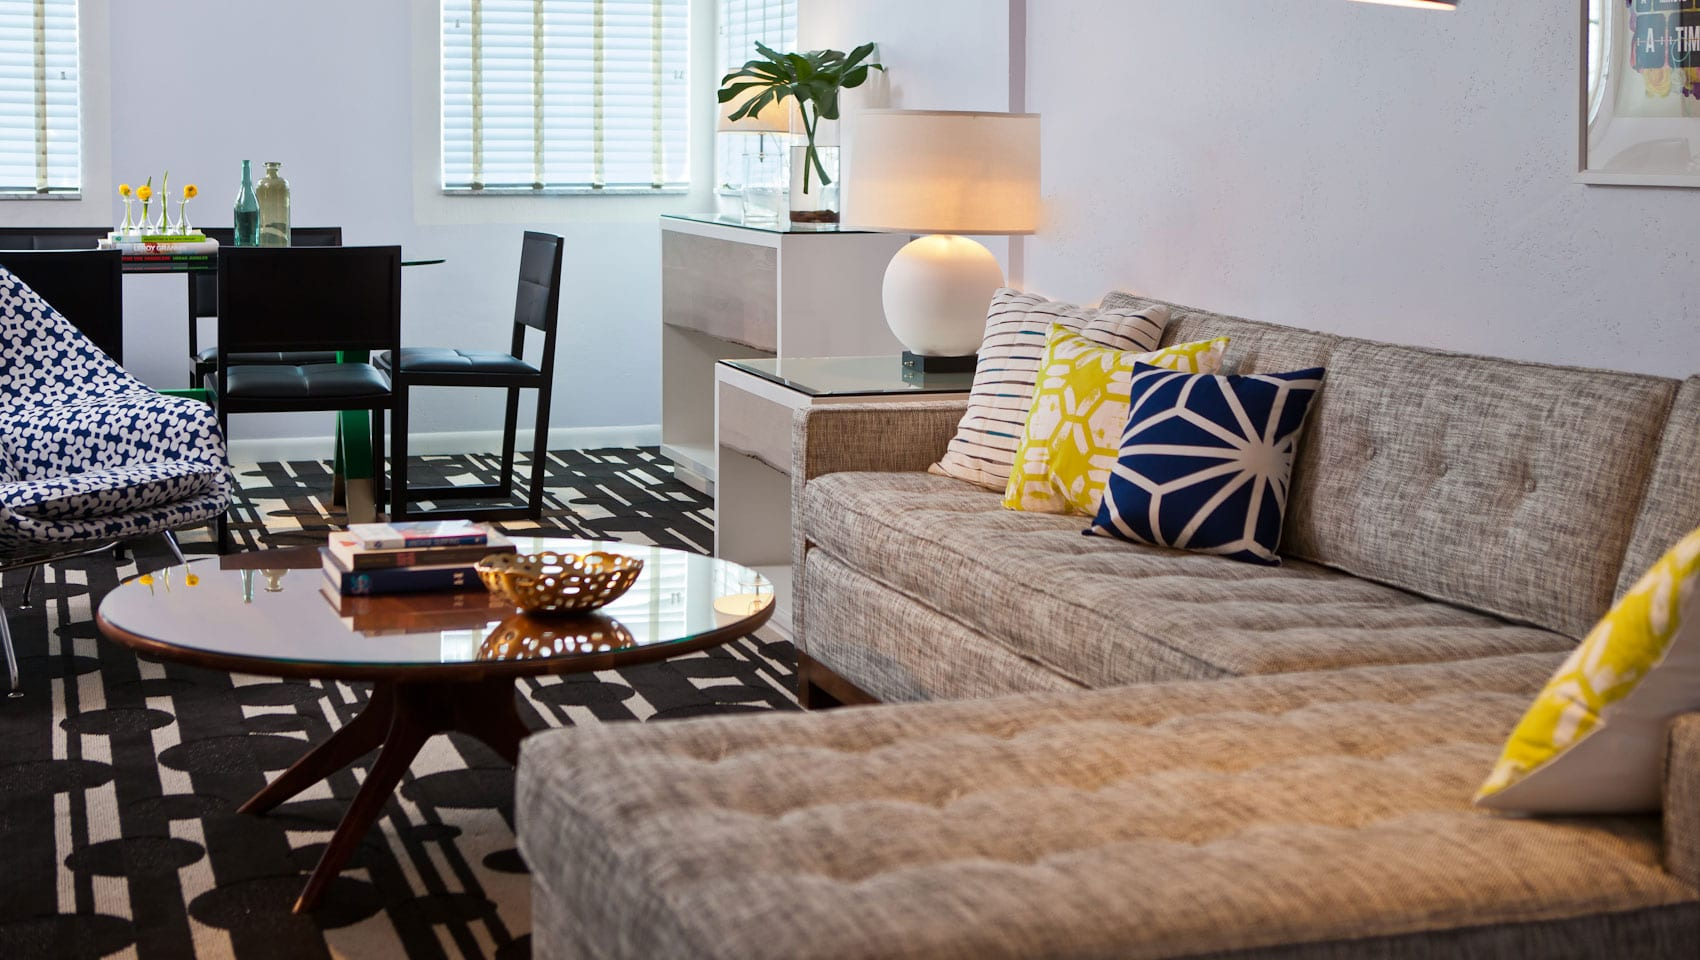 Cheap Hotel Suites In Miami For Your Bachelor Party. Living Room Ideas For Odd Shaped Rooms. Linen Living Room Curtains. Living Room Design Steps. Green For Living Room Paint. Living Room Theater Gift Card. The Living Room At Mahim. Best Living Room Paint Colors 2016. Living Room Nye